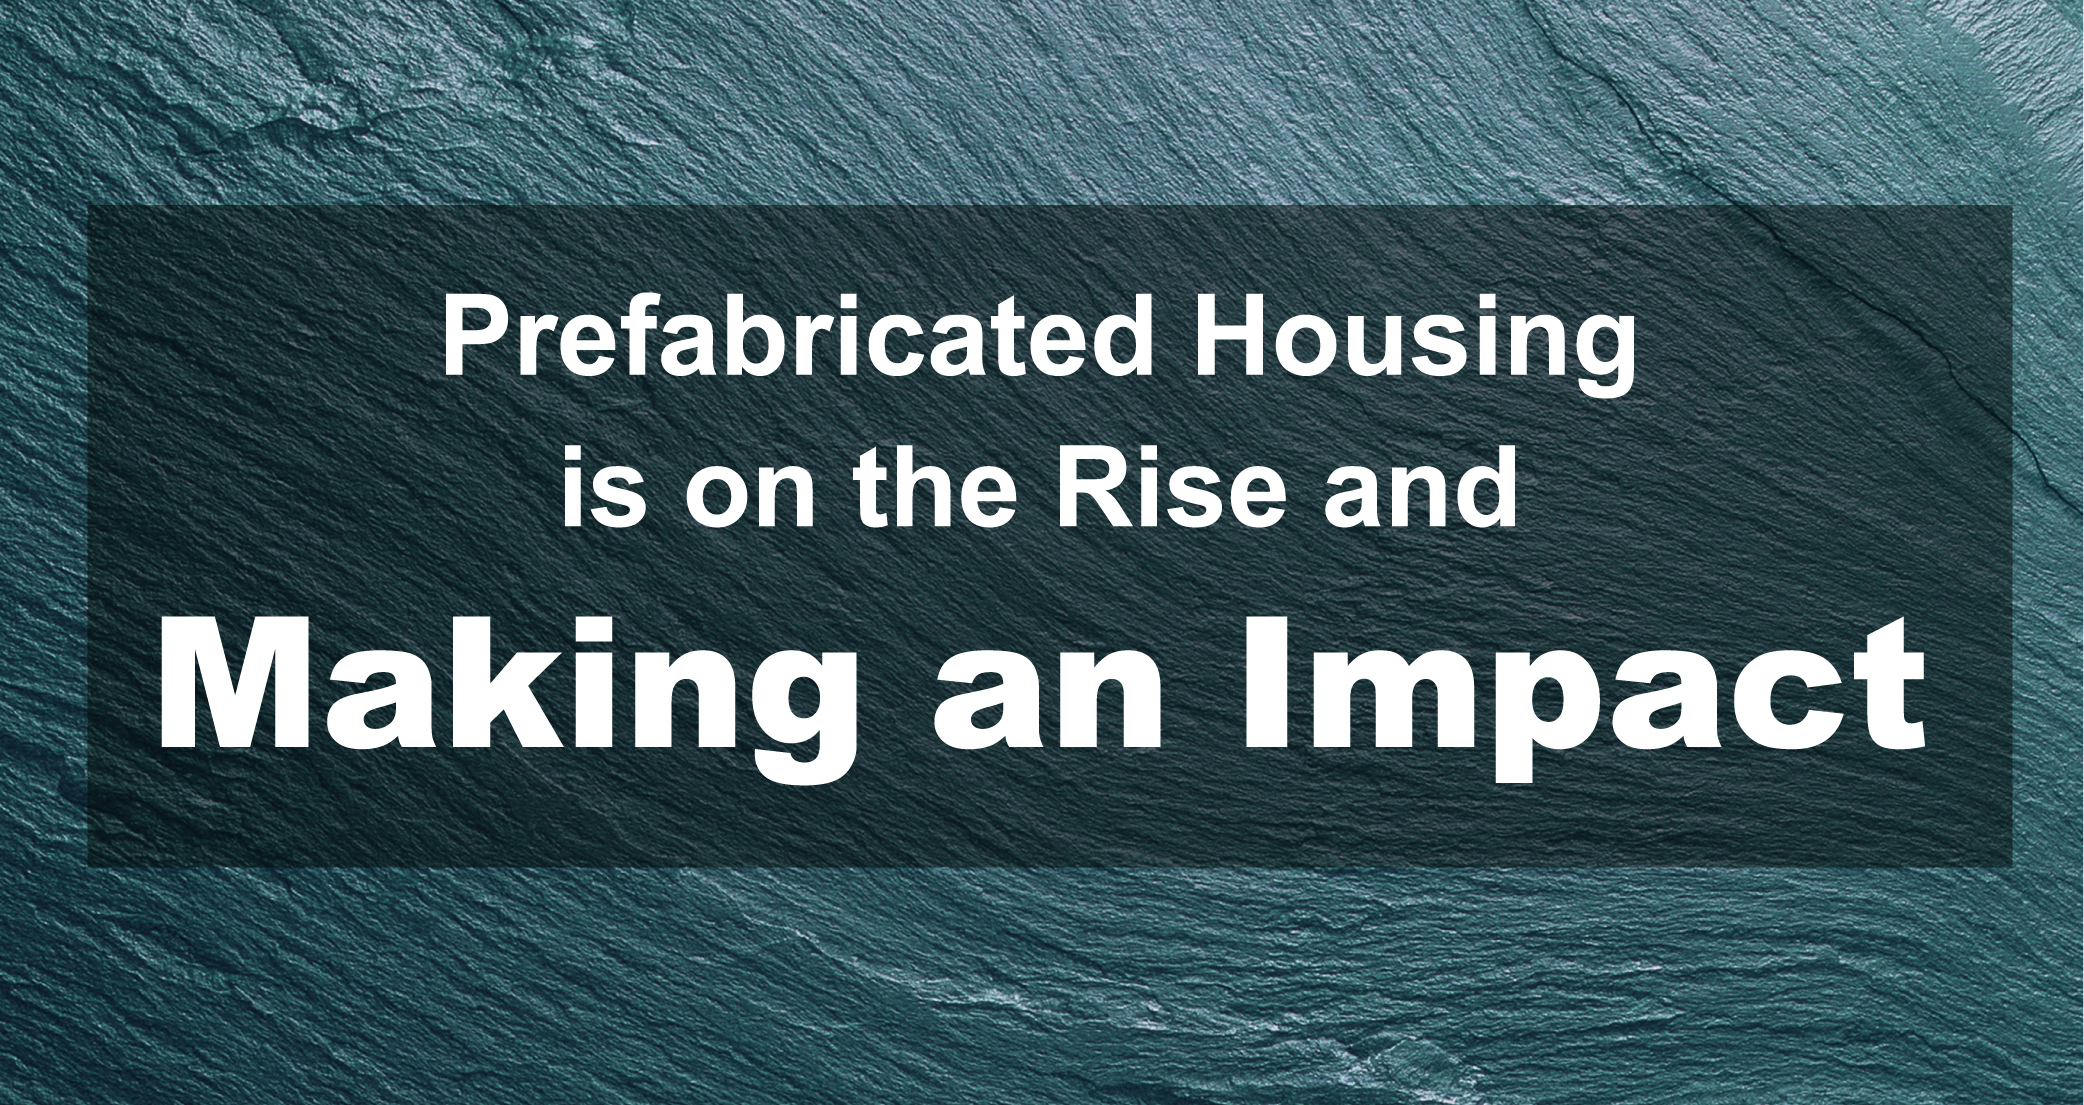 Prefabricated Housing is on the Rise and Making an Impact